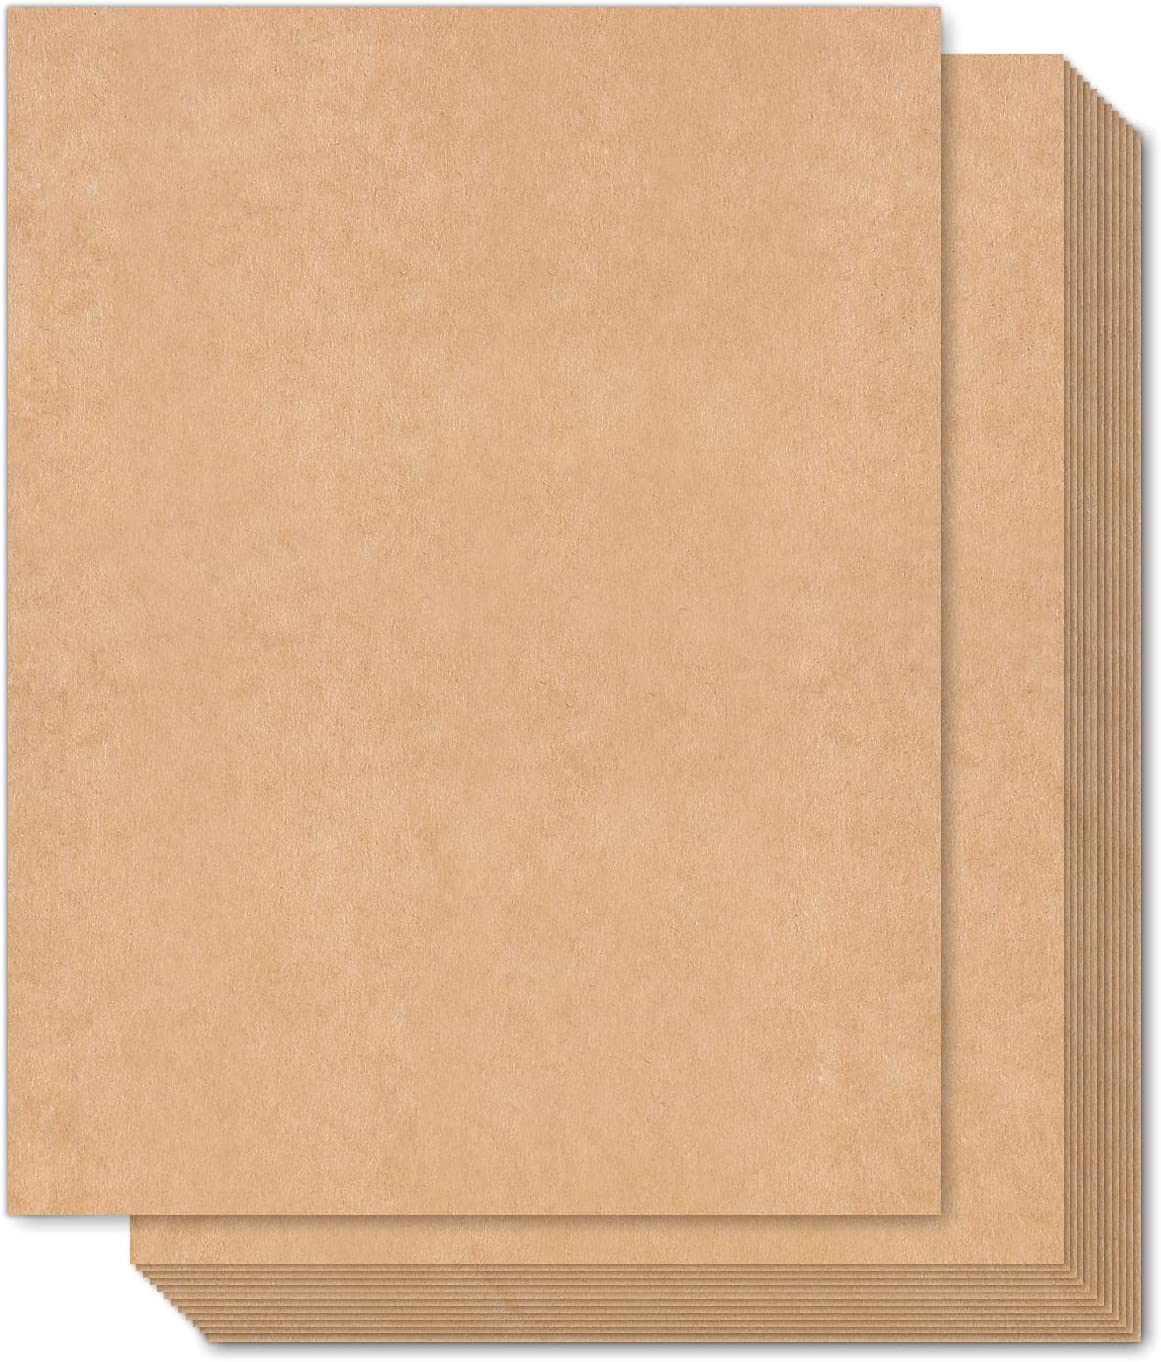 """Brown Kraft Cardstock Thick Paper 100 Sheets, Ohuhu 8.5"""" x 11"""" Heavyweight 90lb Cover Card Stock for Crafts and DIY Cards Making : Arts, Crafts & Sewing"""